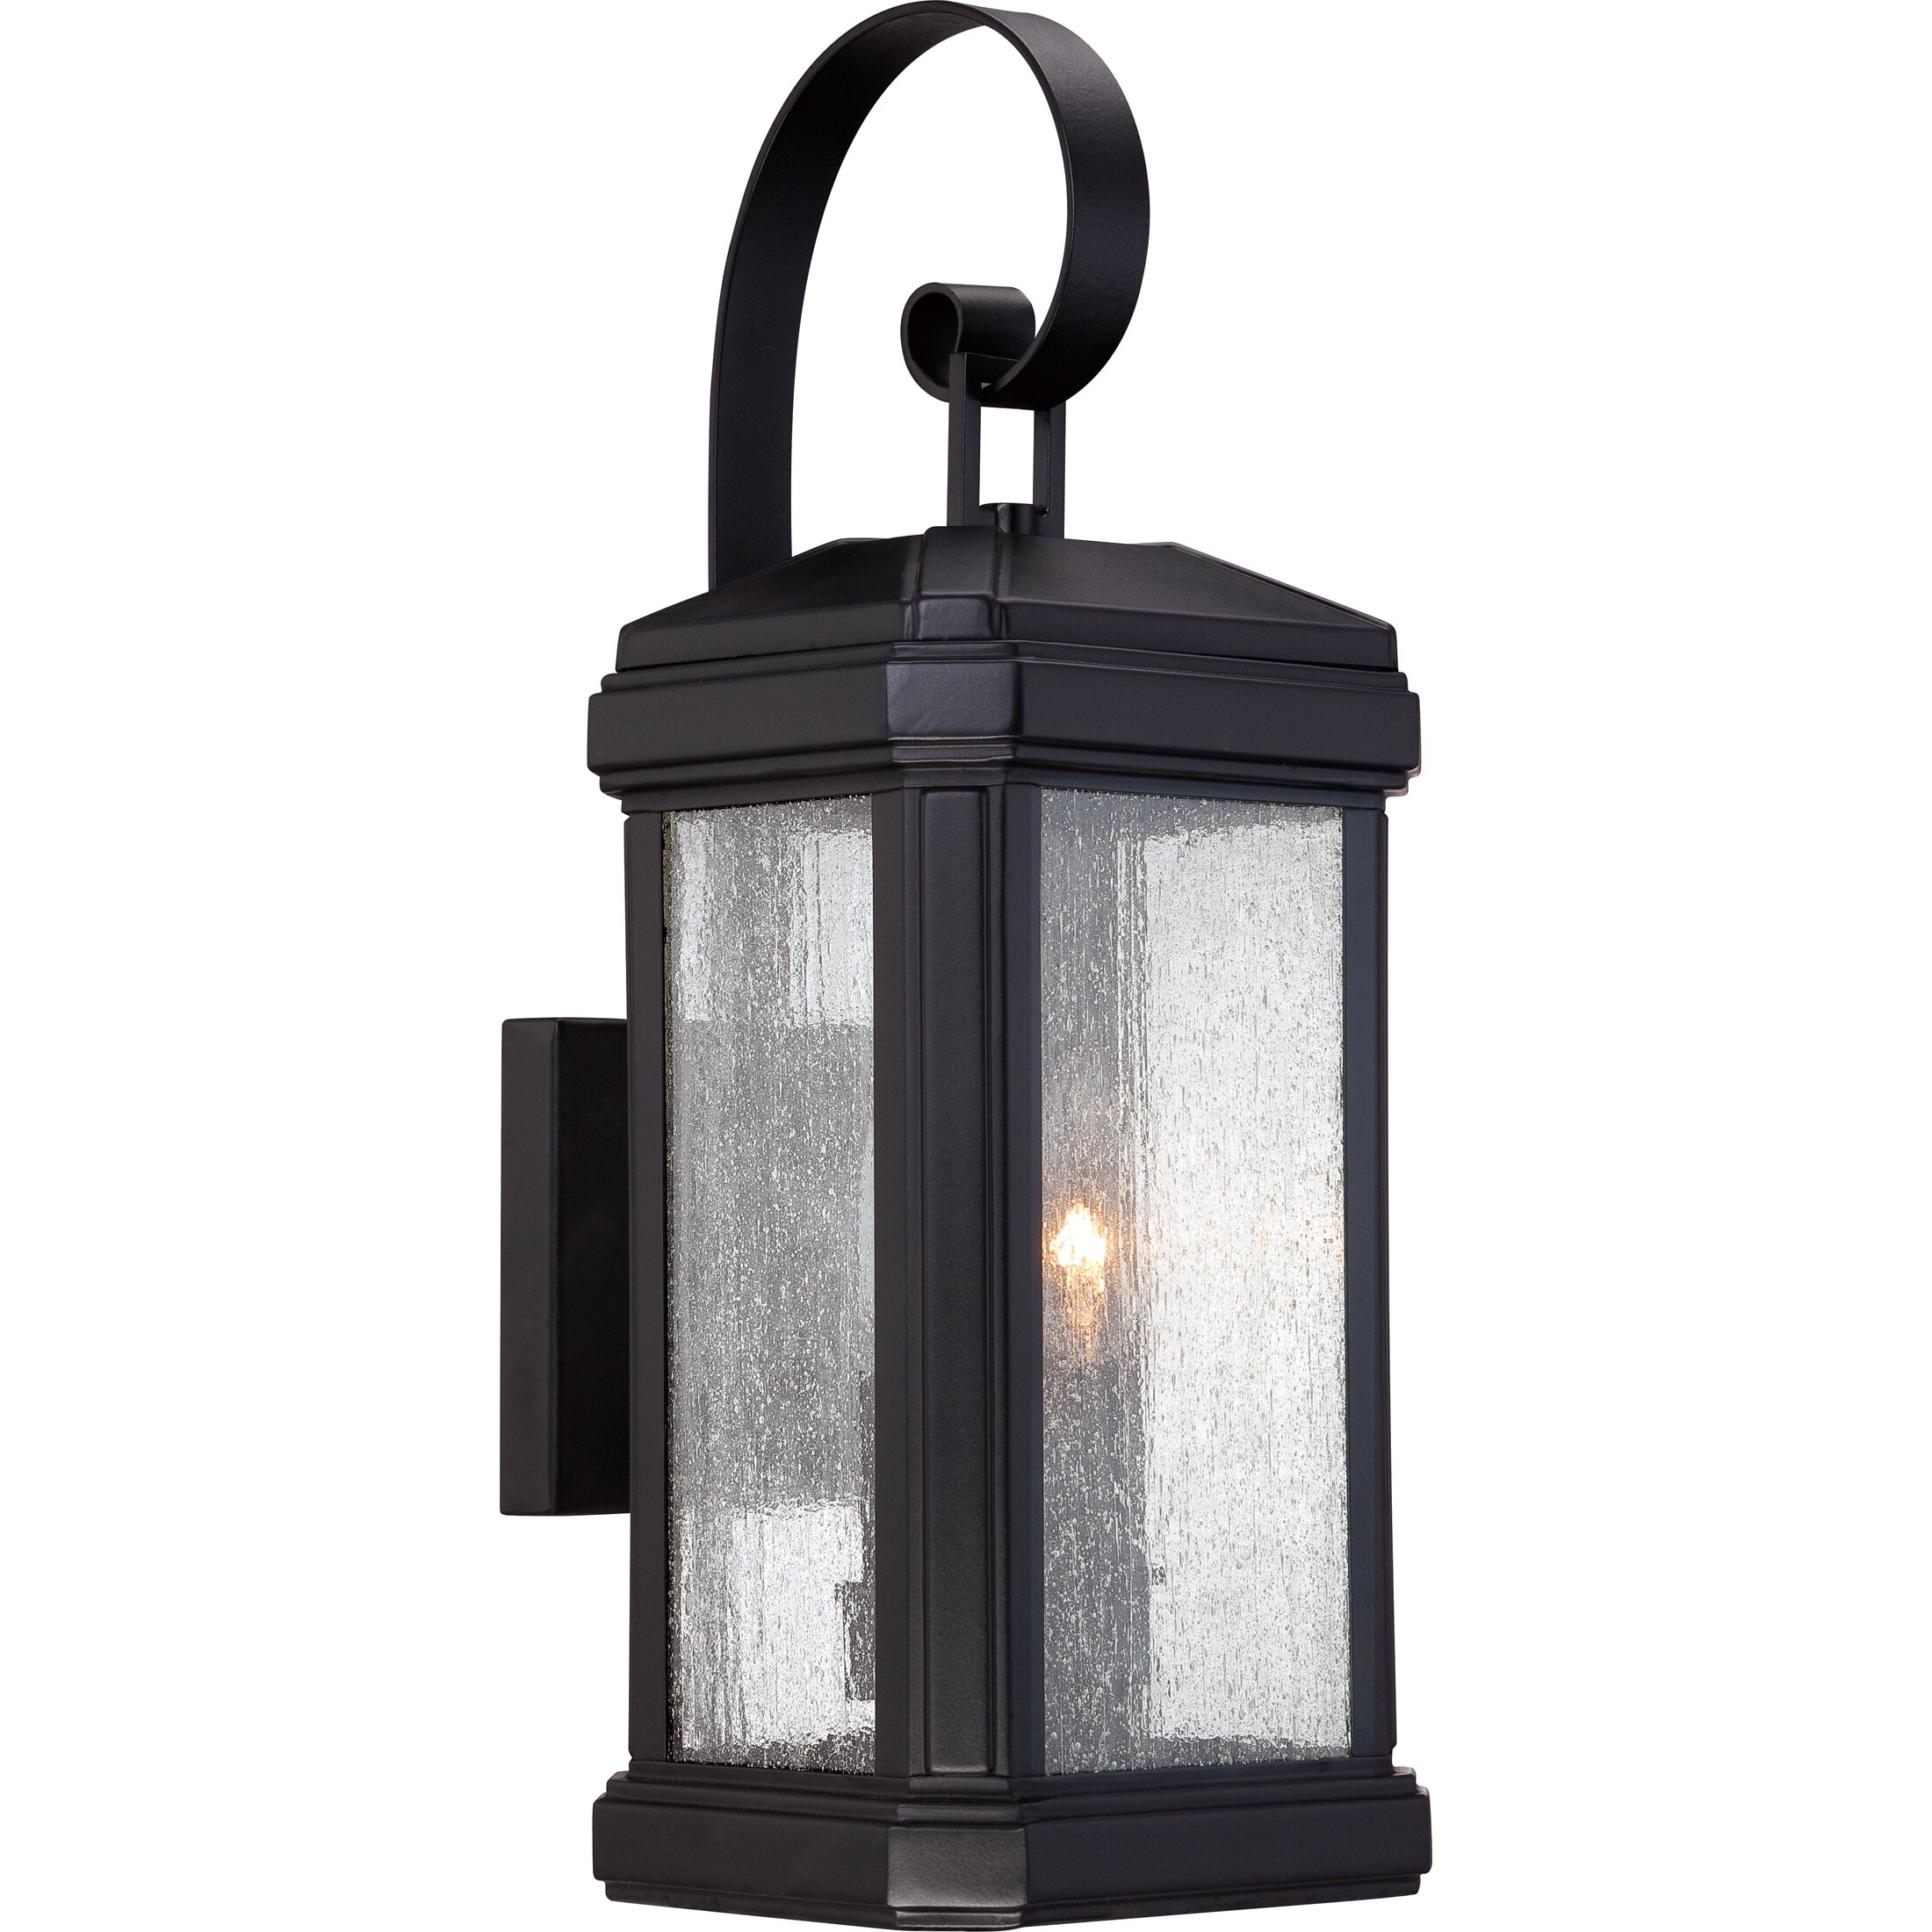 Quoizel Trumbull 2 Light Outdoor Wall Lantern & Reviews Wayfair